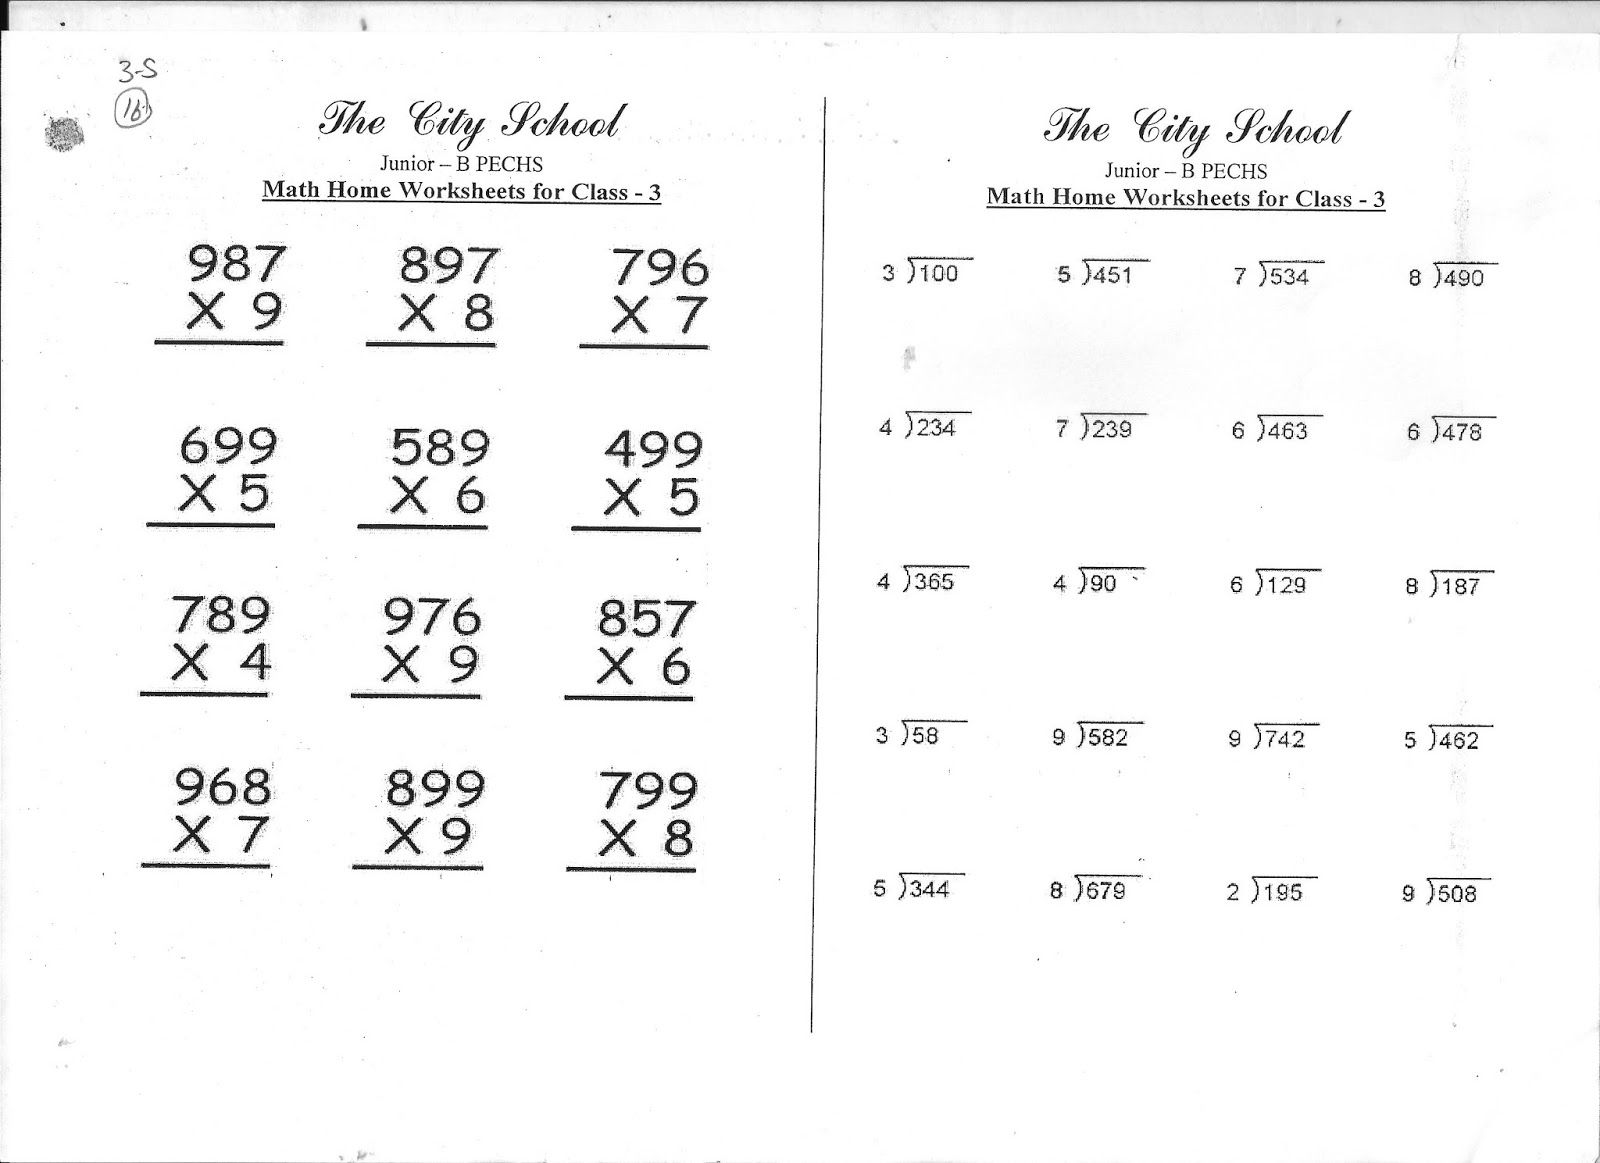 The City School Worksheet For Class 3english Maths Science Worksheets 3 Multiplic Criabooks Criabooks Science Worksheets Math Worksheets Worksheets [ 1163 x 1600 Pixel ]